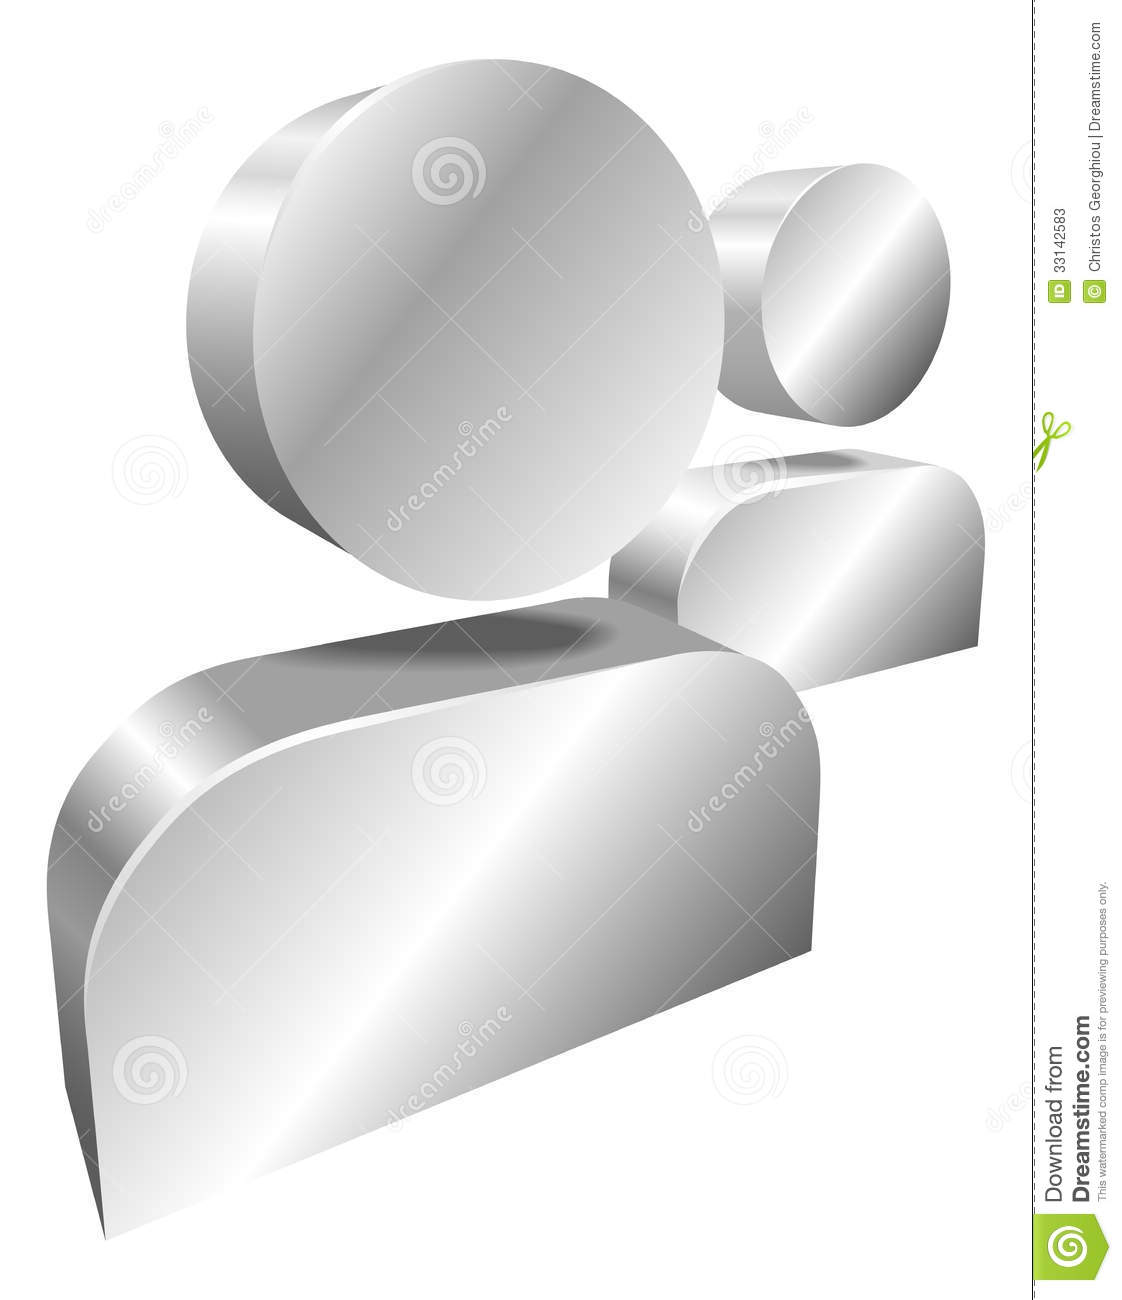 Social Media Icon Stock Photos - Image: 33142583